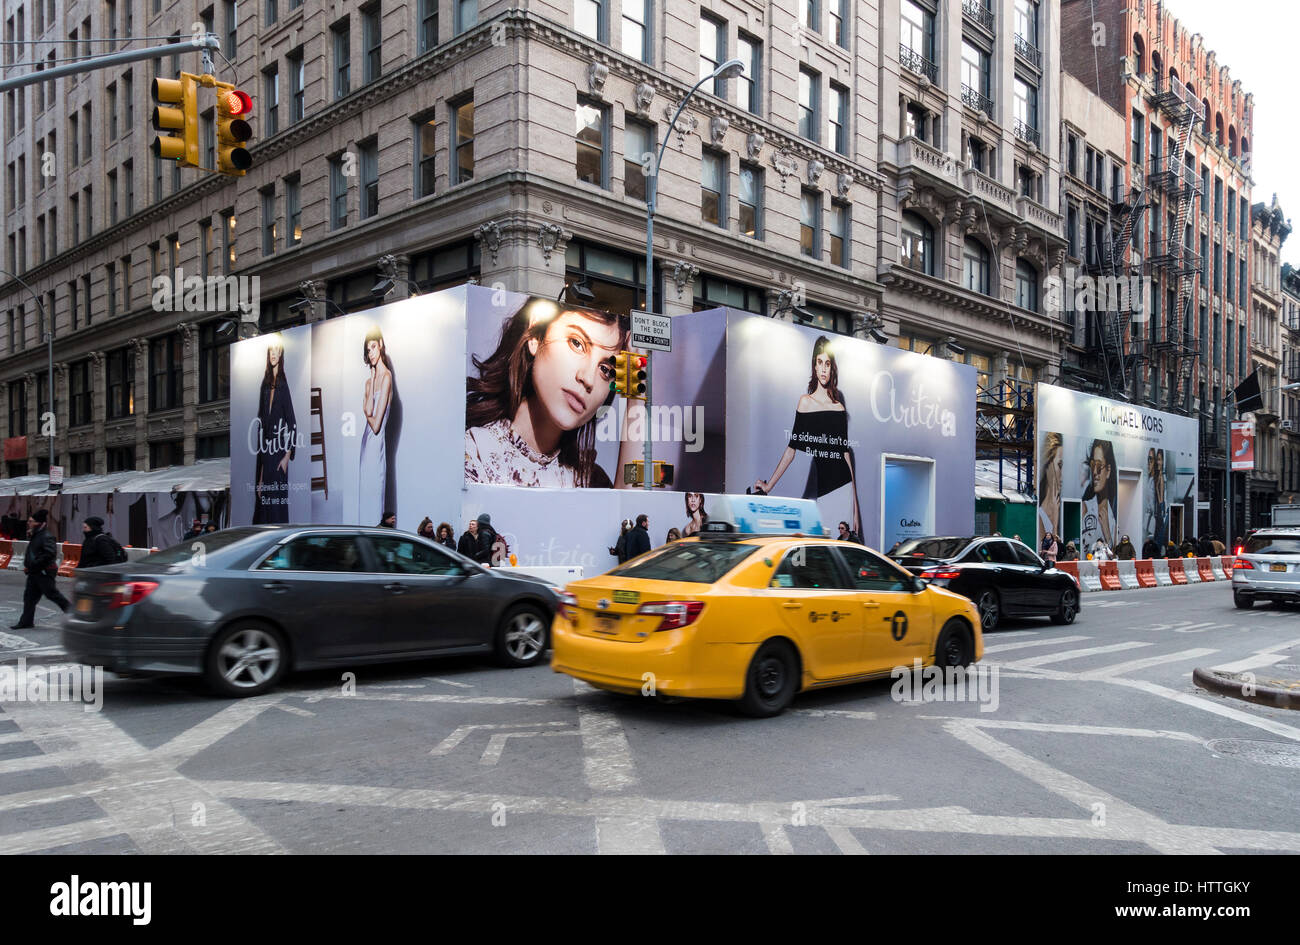 Opening of a new store on Broadway and Spring Sreet - Stock Image